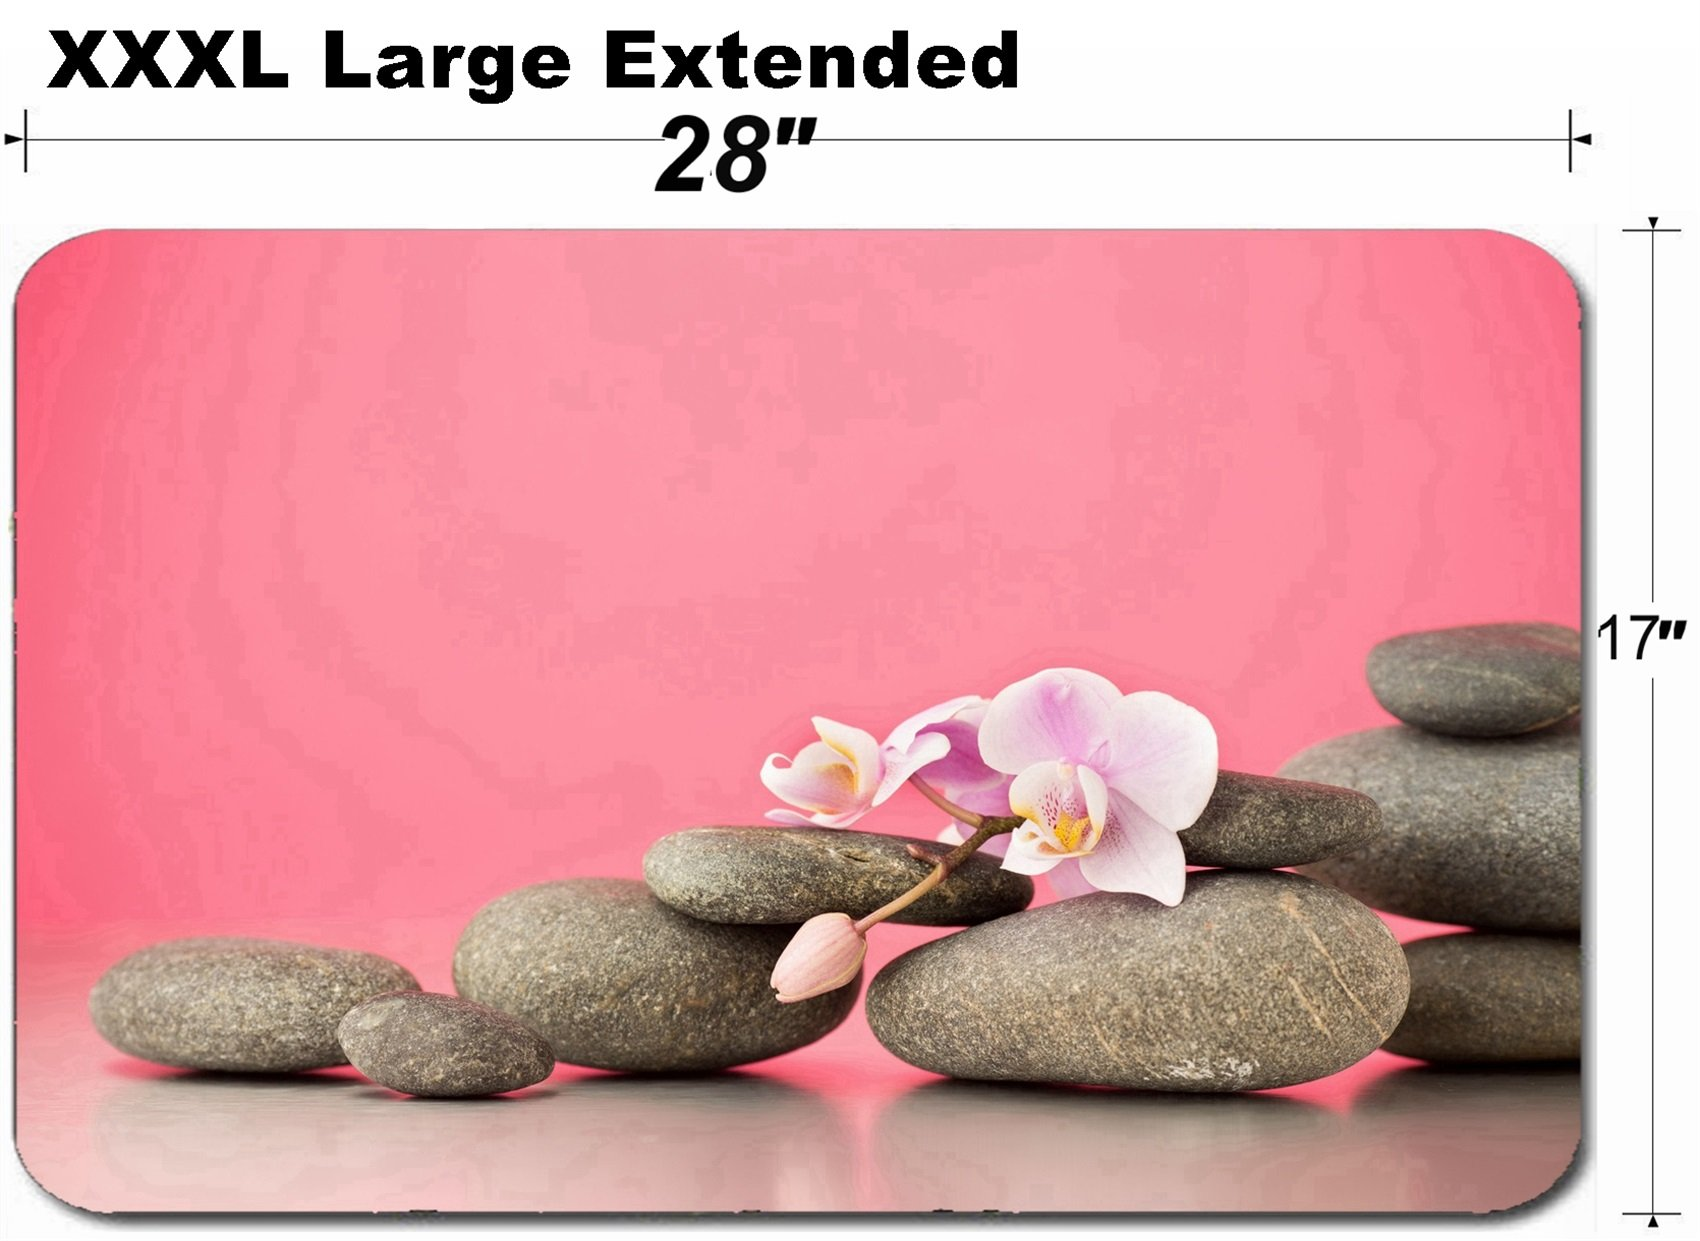 MSD Large Table Mat Non-Slip Natural Rubber Desk Pads Image ID 27140351 Spa Stones on Pink Background with Orchids